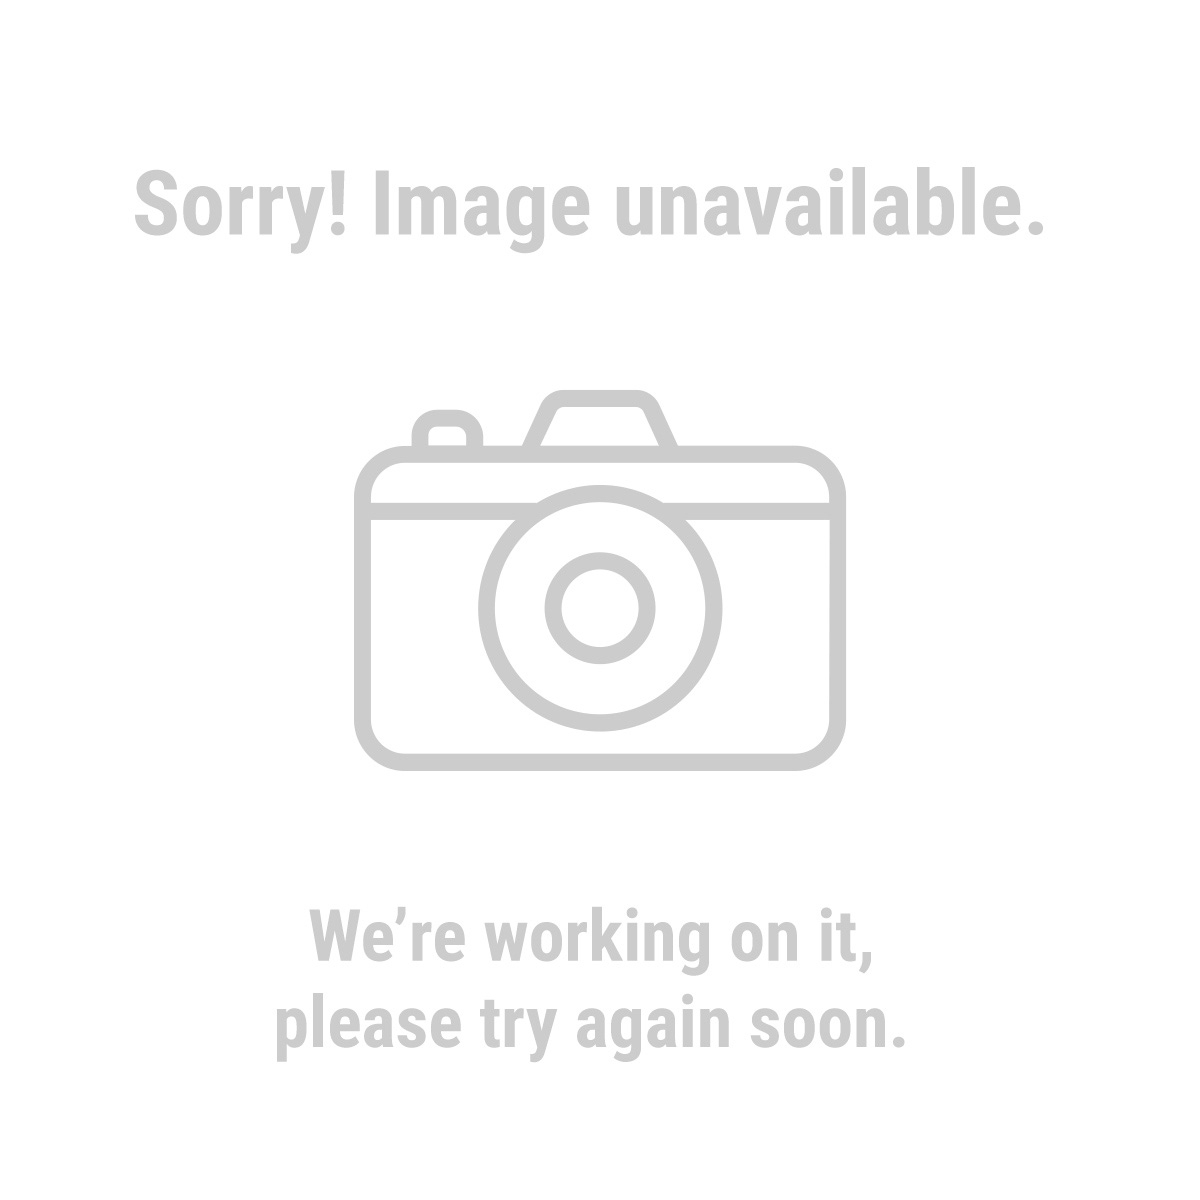 Haul-Master 65685 600 Lb. Capacity Appliance Hand Truck